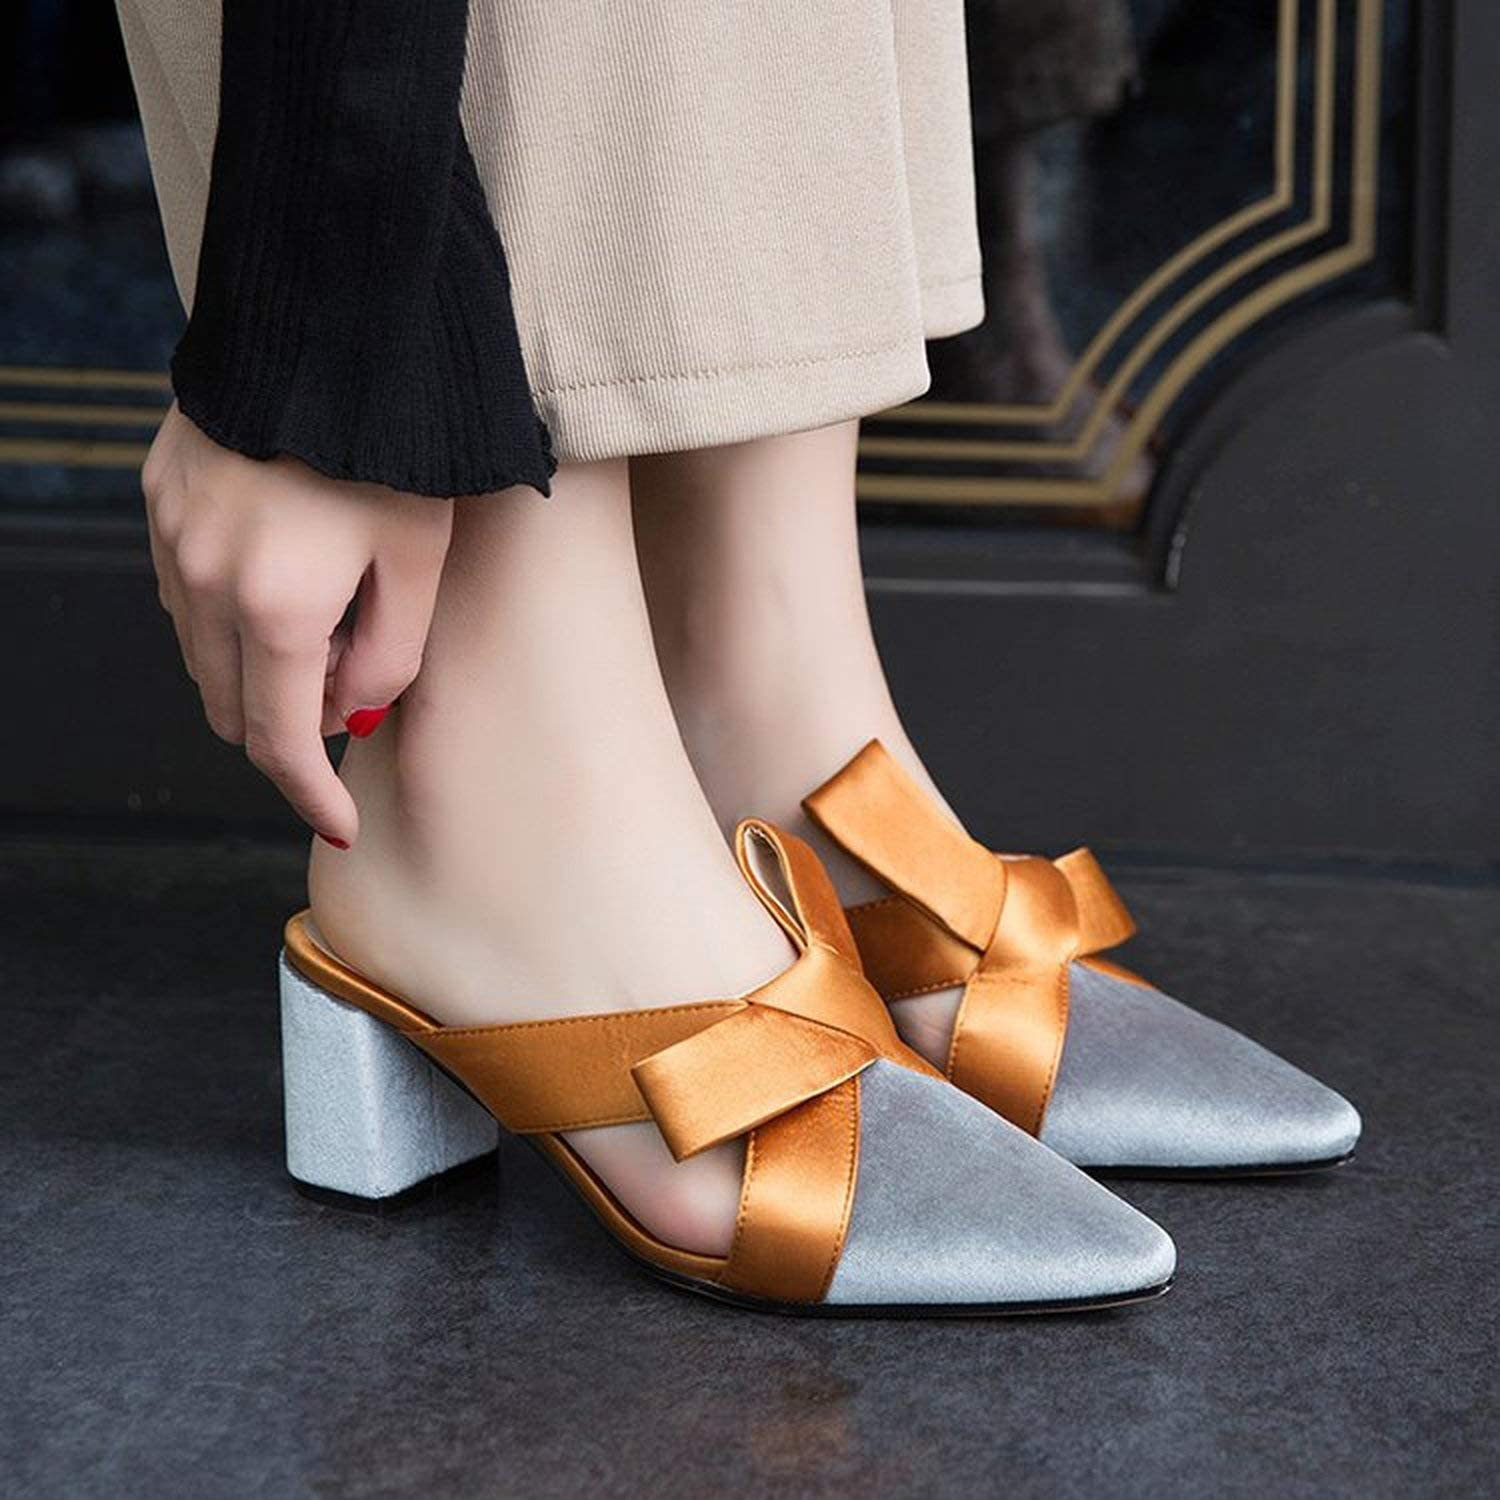 Bowknot Women Slippers Pointed Toe High Heels Slippers Ladies Fashion Women Shoes Zapatos,Black,4